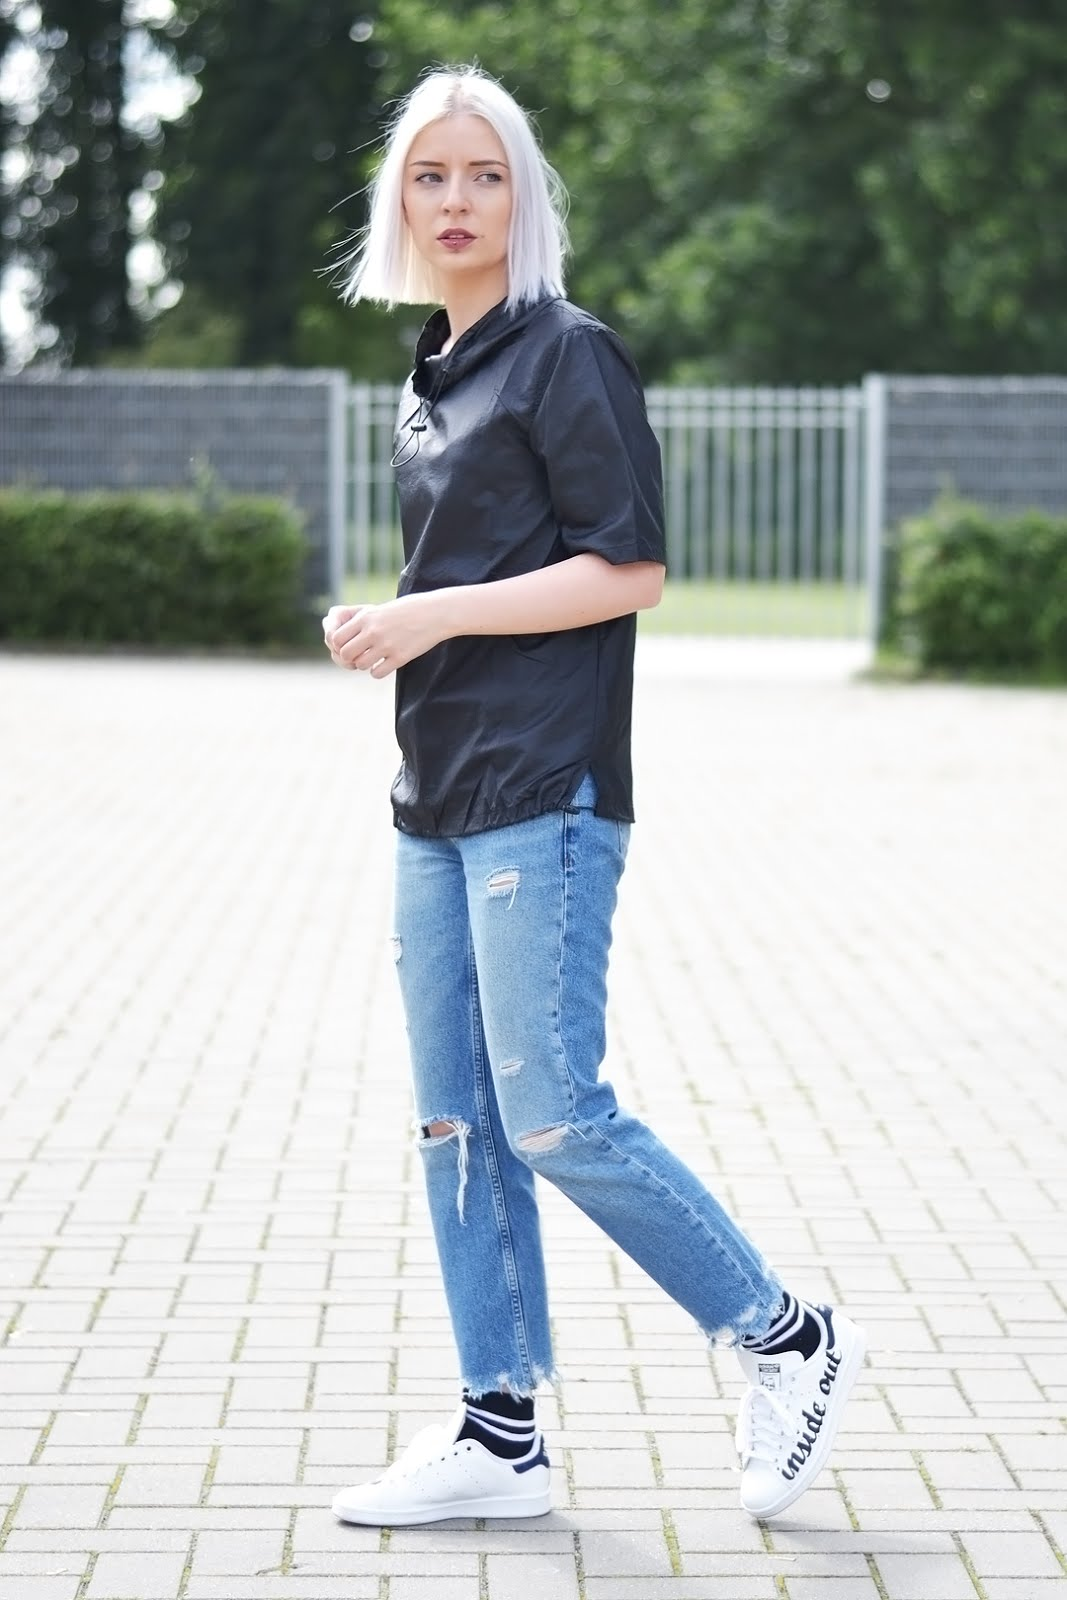 Polyamide top, weekday, mango ripped jeans, stan smith sneakers, zalando blogger awards, street style, fashion blogger, beglium